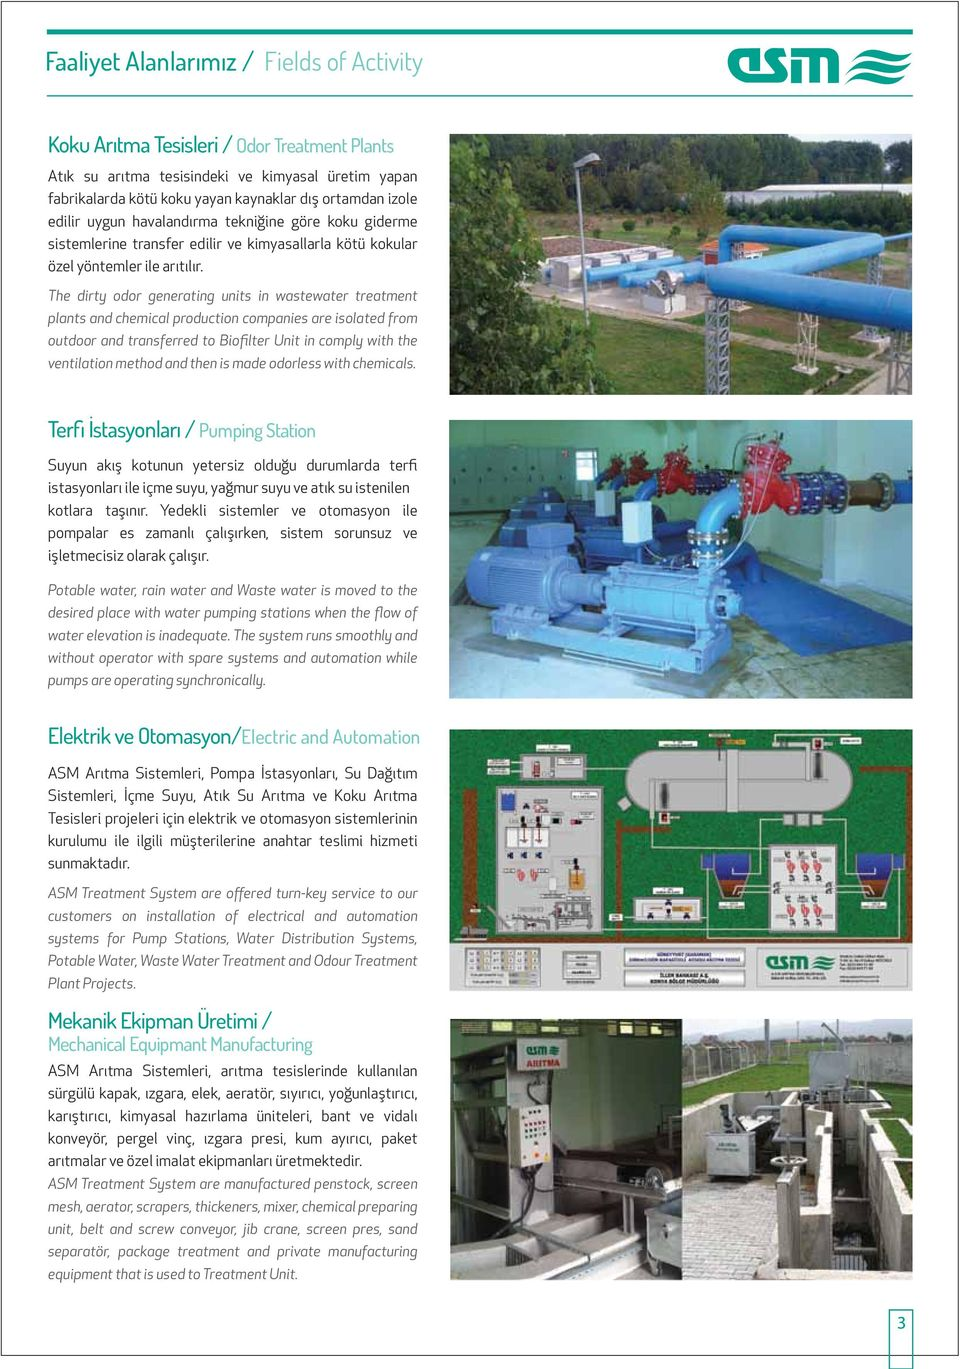 The dirty odor generating units in wastewater treatment plants and chemical production companies are isolated from outdoor and transferred to Biofilter Unit in comply with the ventilation method and